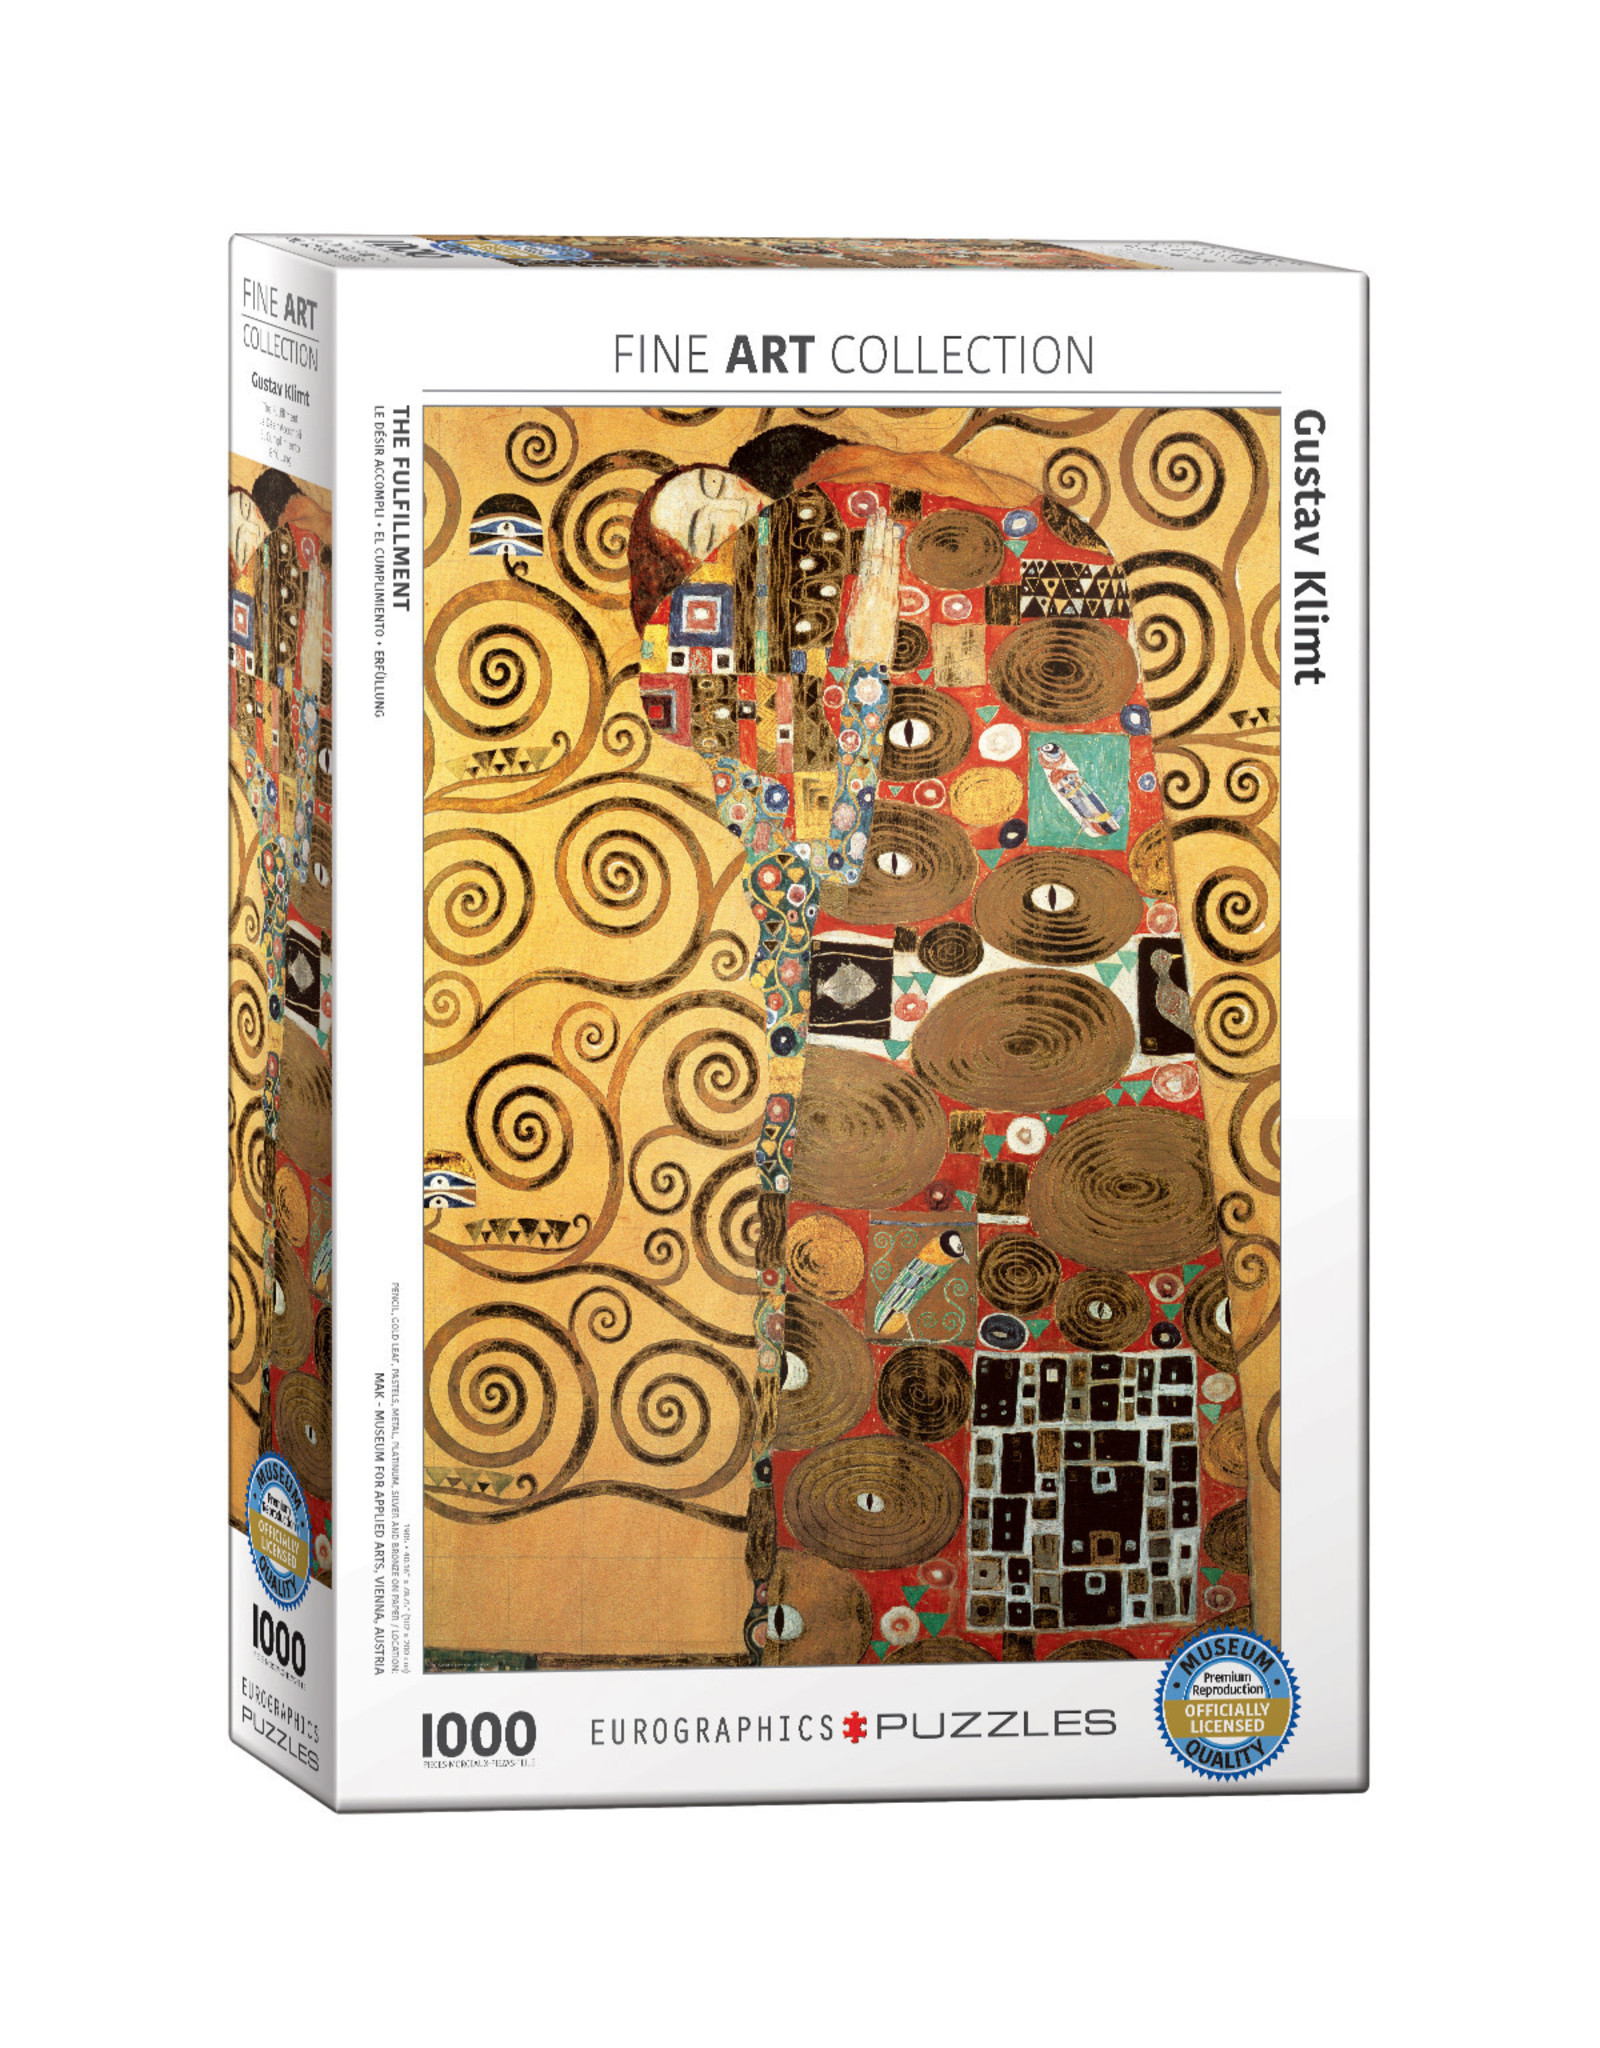 Eurographics Puzzles The Fulfillment 1000pc